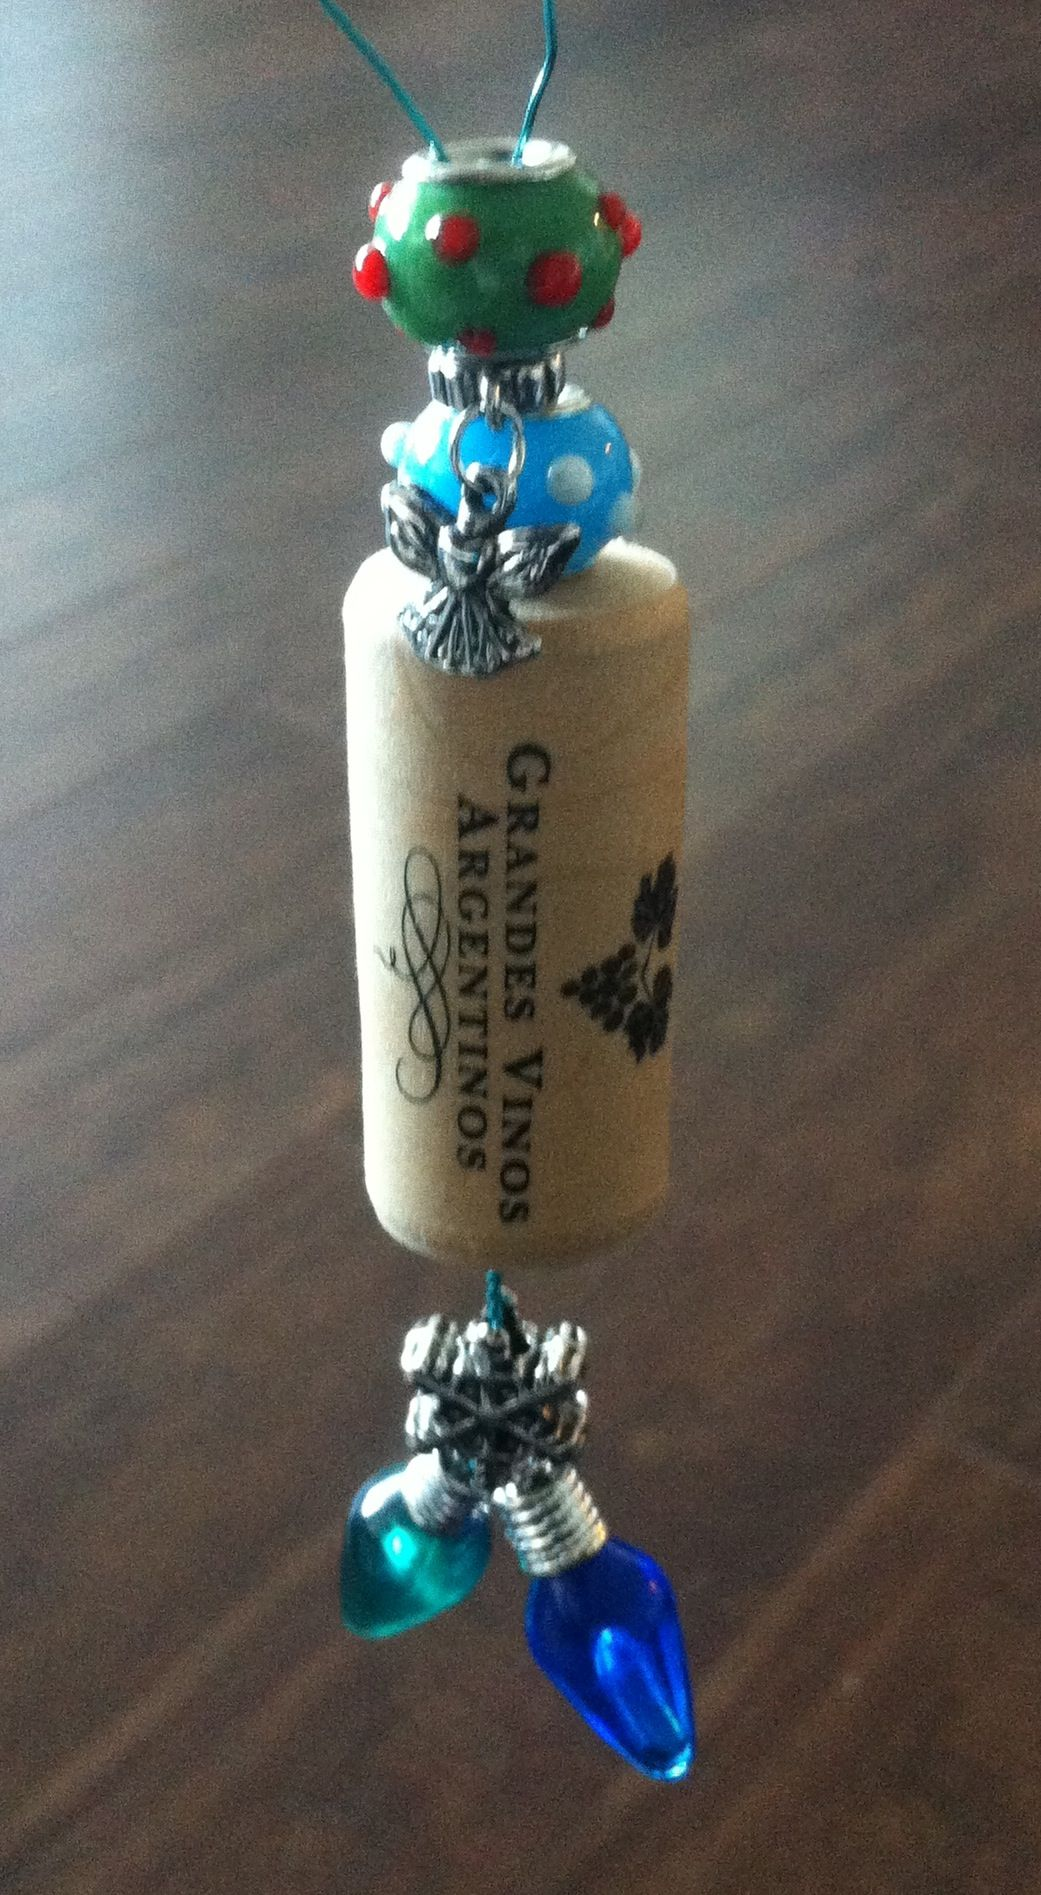 Ornaments made from wine corks - Original Post Made This Christmas Ornament With A Wine Cork From Their Wedding Something To